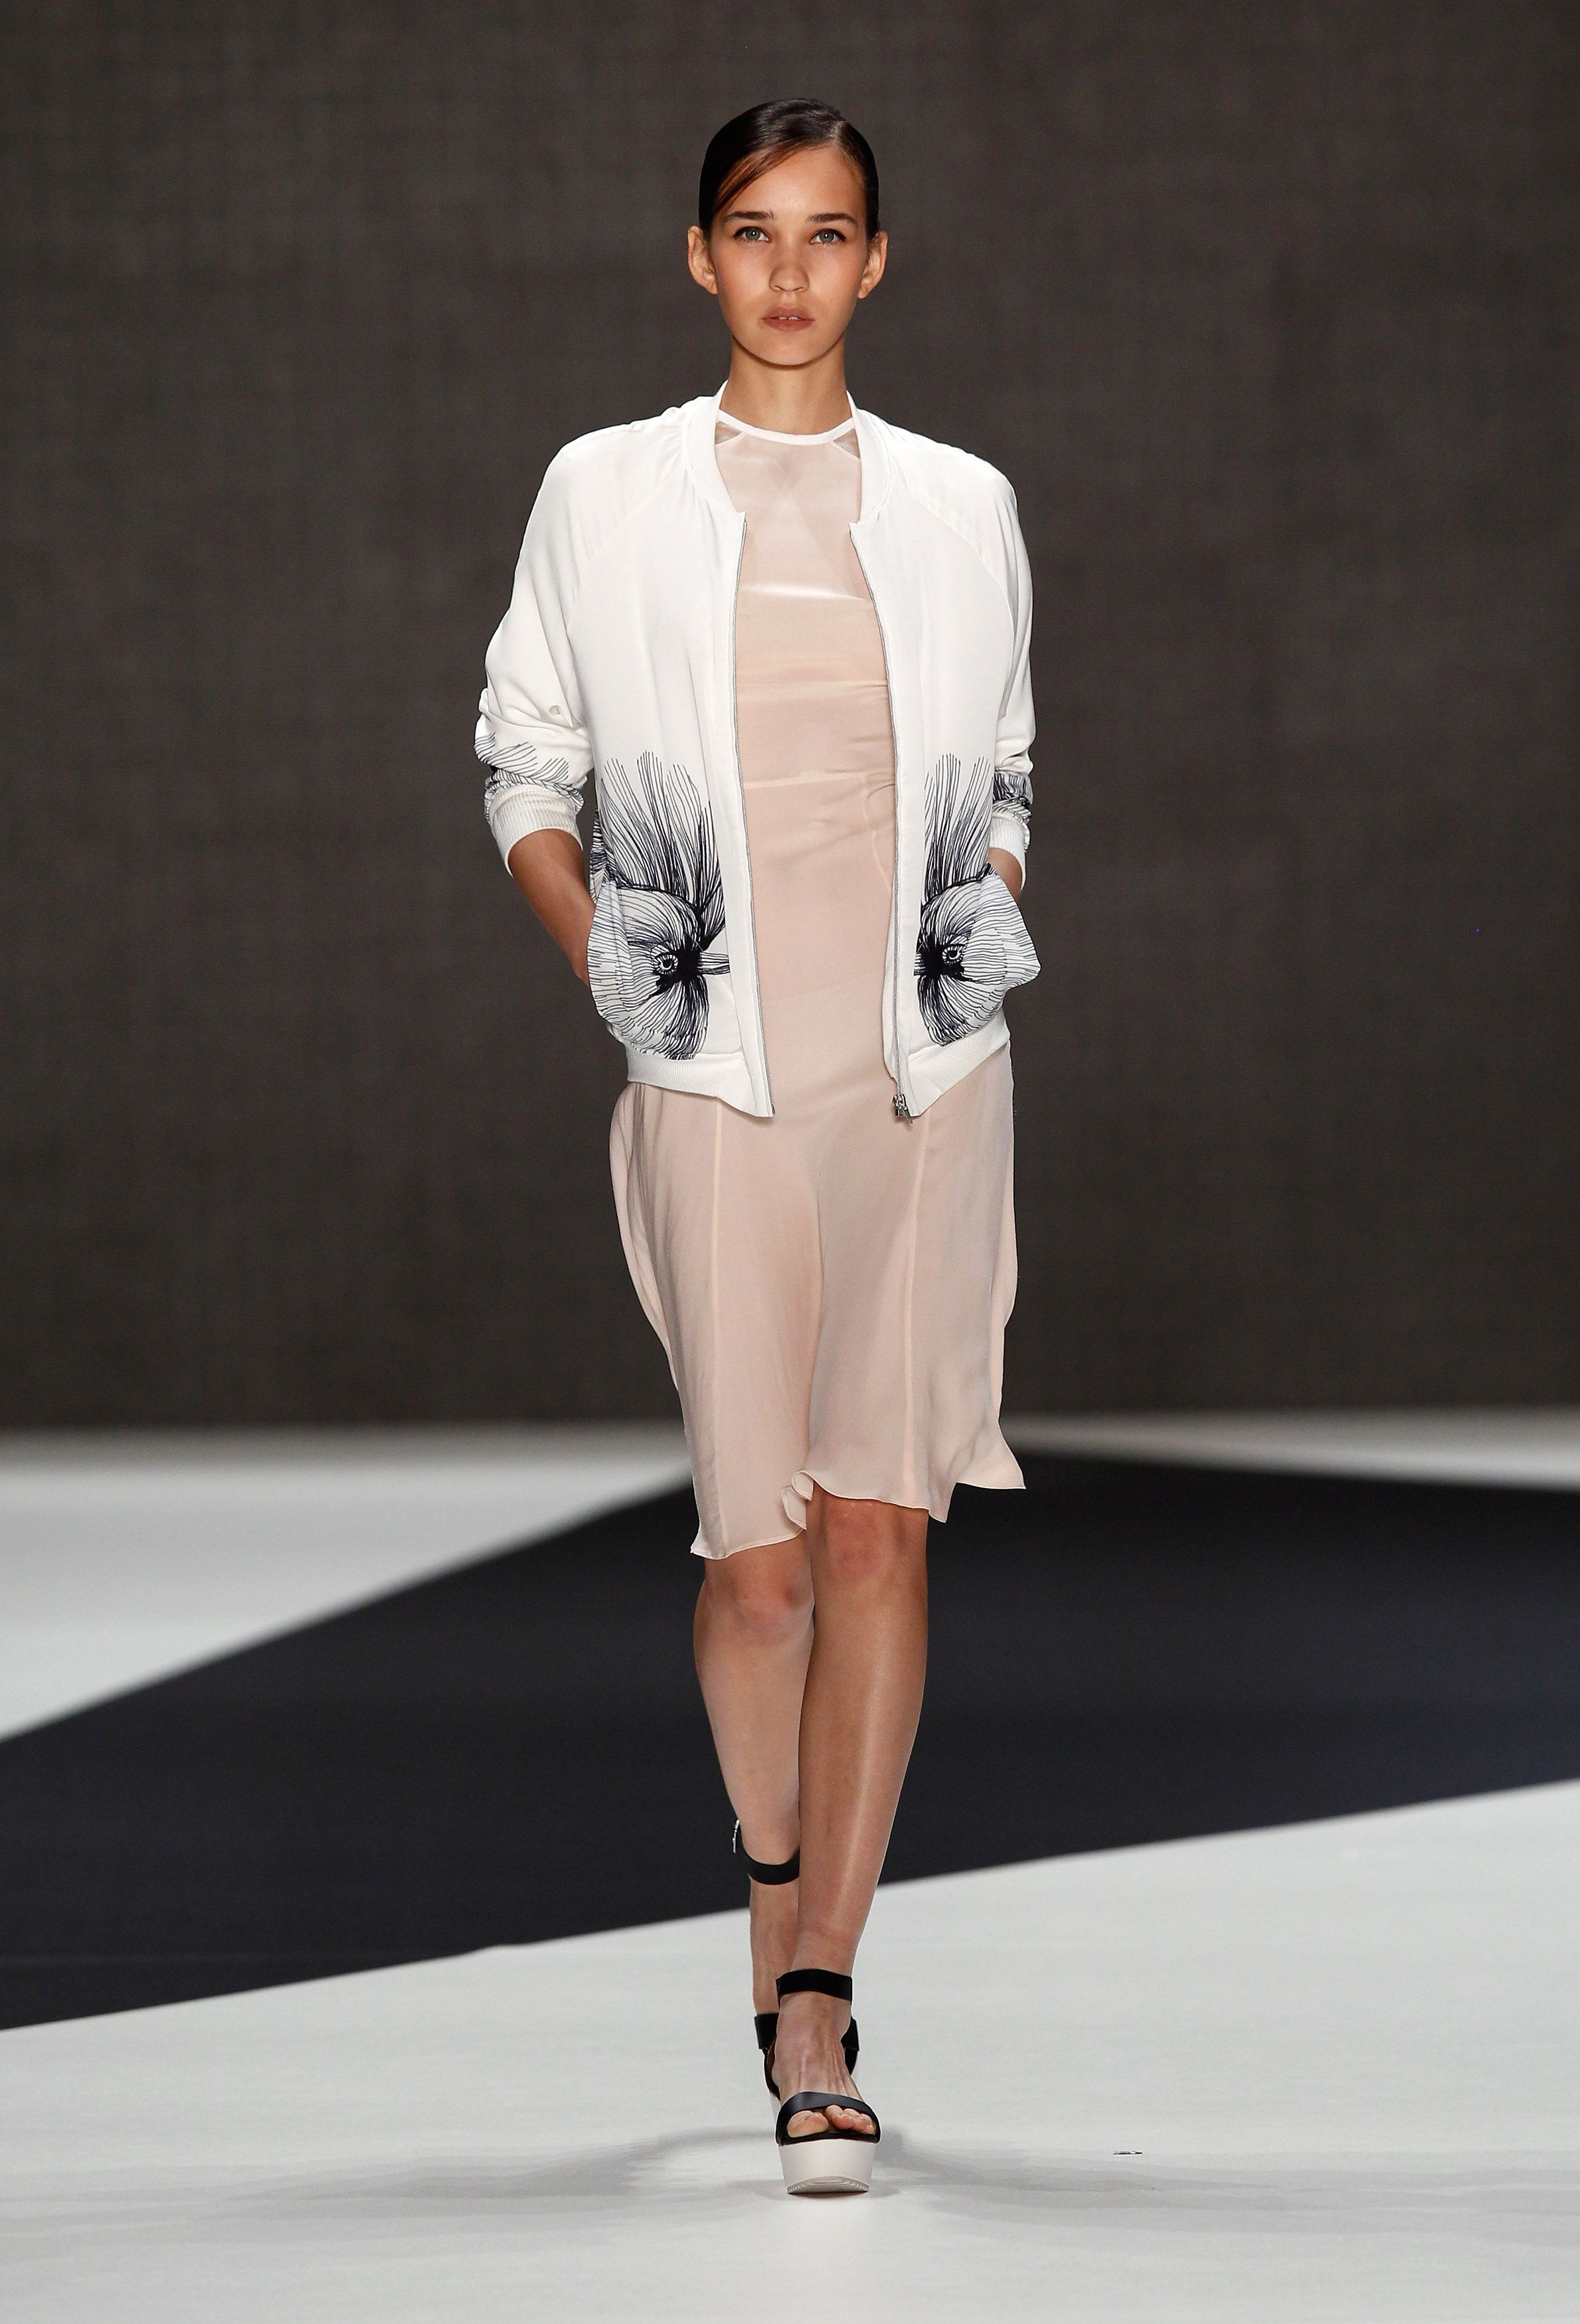 Spring cocktail dresses with jackets